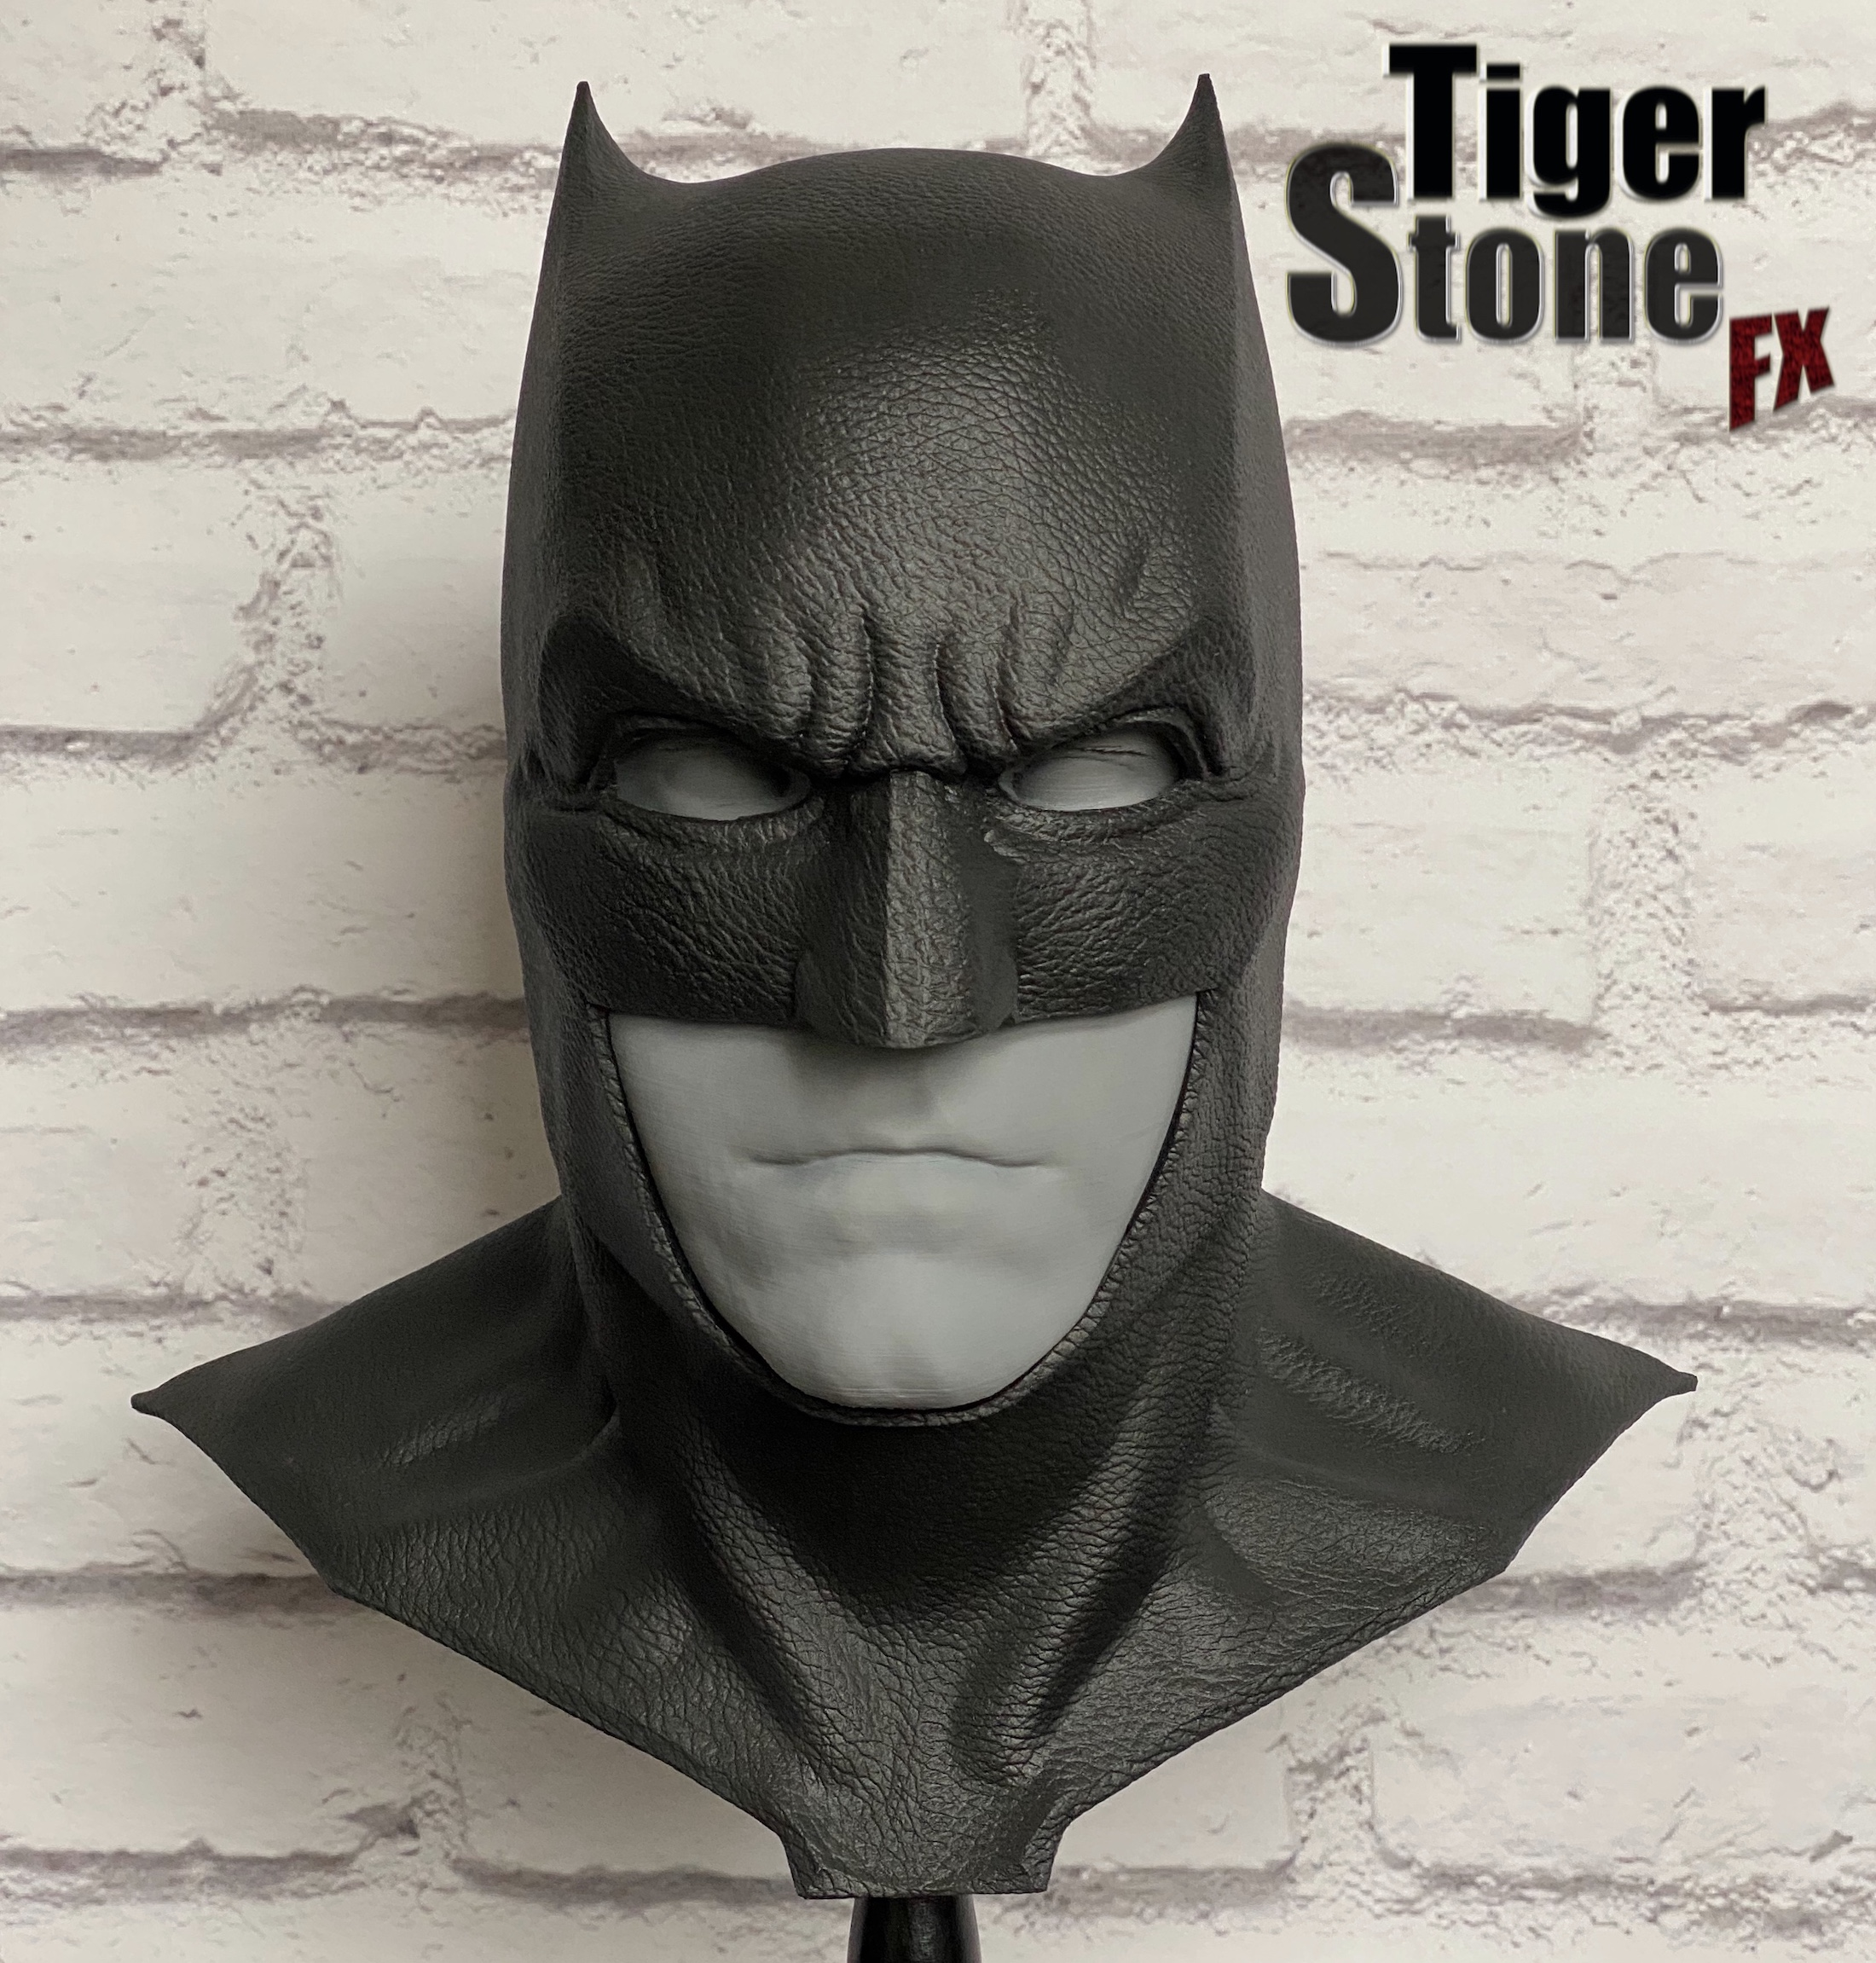 Justice League Batman cowl Batfleck (front) - handmade by Tiger Stone FX